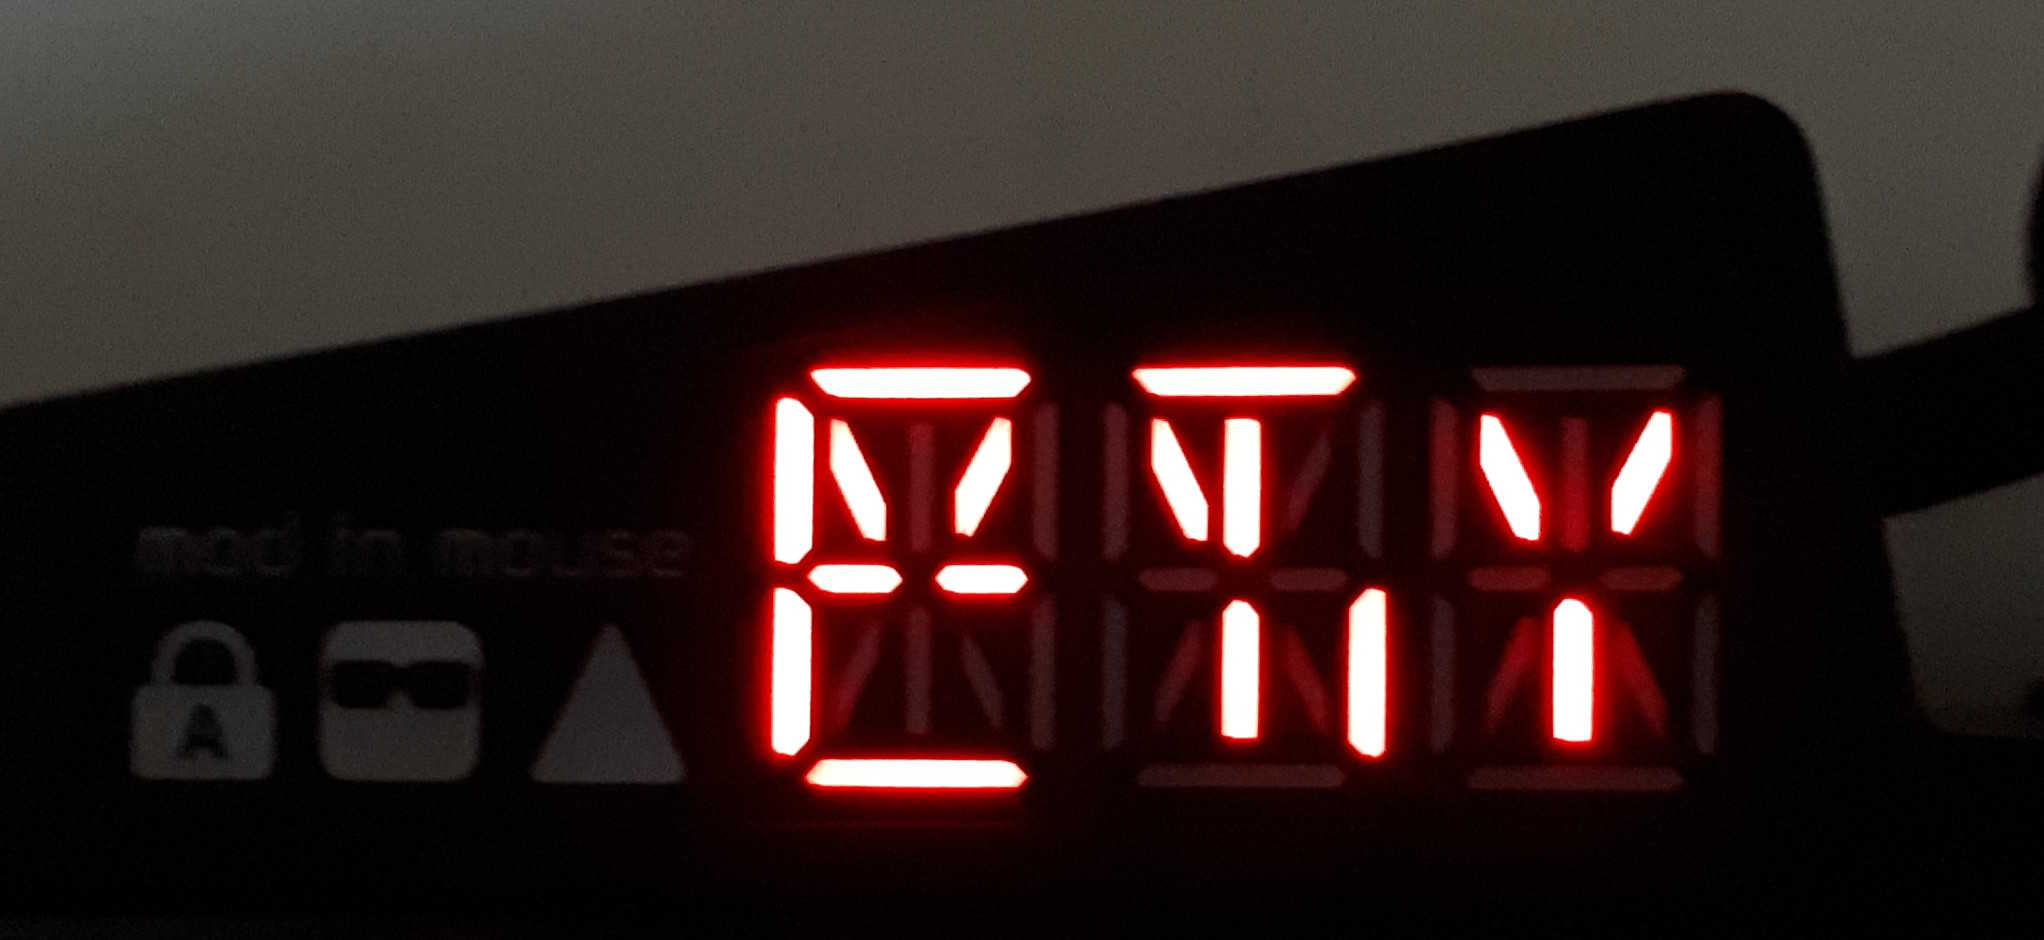 Hang loose keyboard symbol choice image symbols and meanings ultimate hacking keyboard the ffc cable connects the display with the left main board apparently we biocorpaavc Gallery